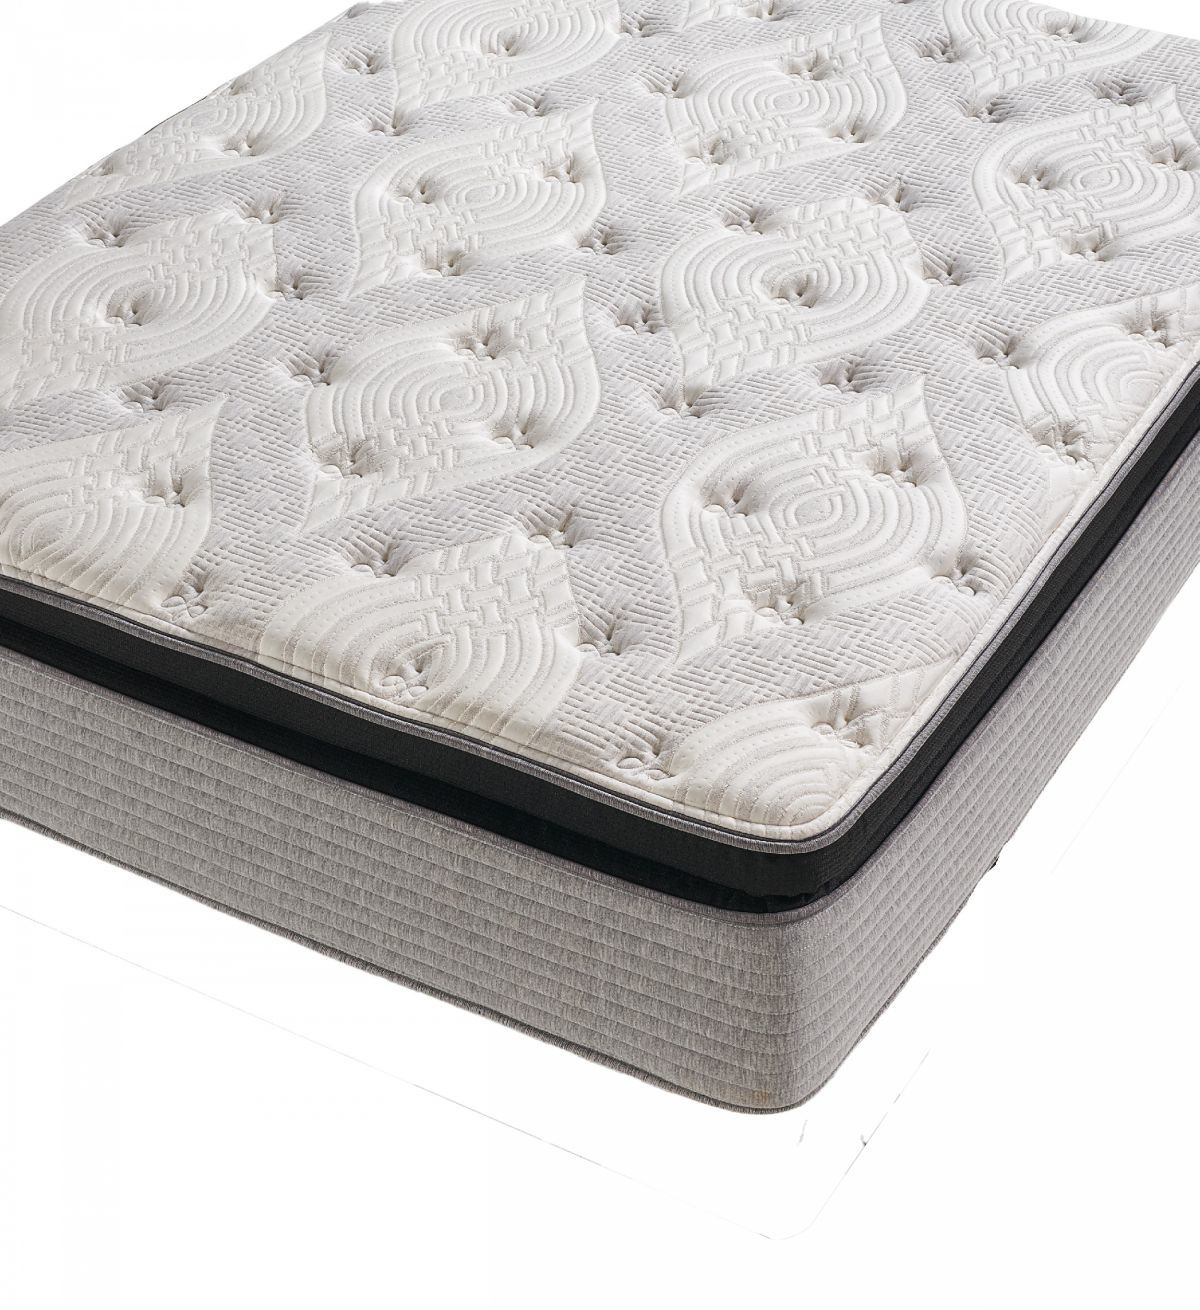 Picture of ISABELLA JUMBO PILLOW TOP TWIN XL MATTRESS